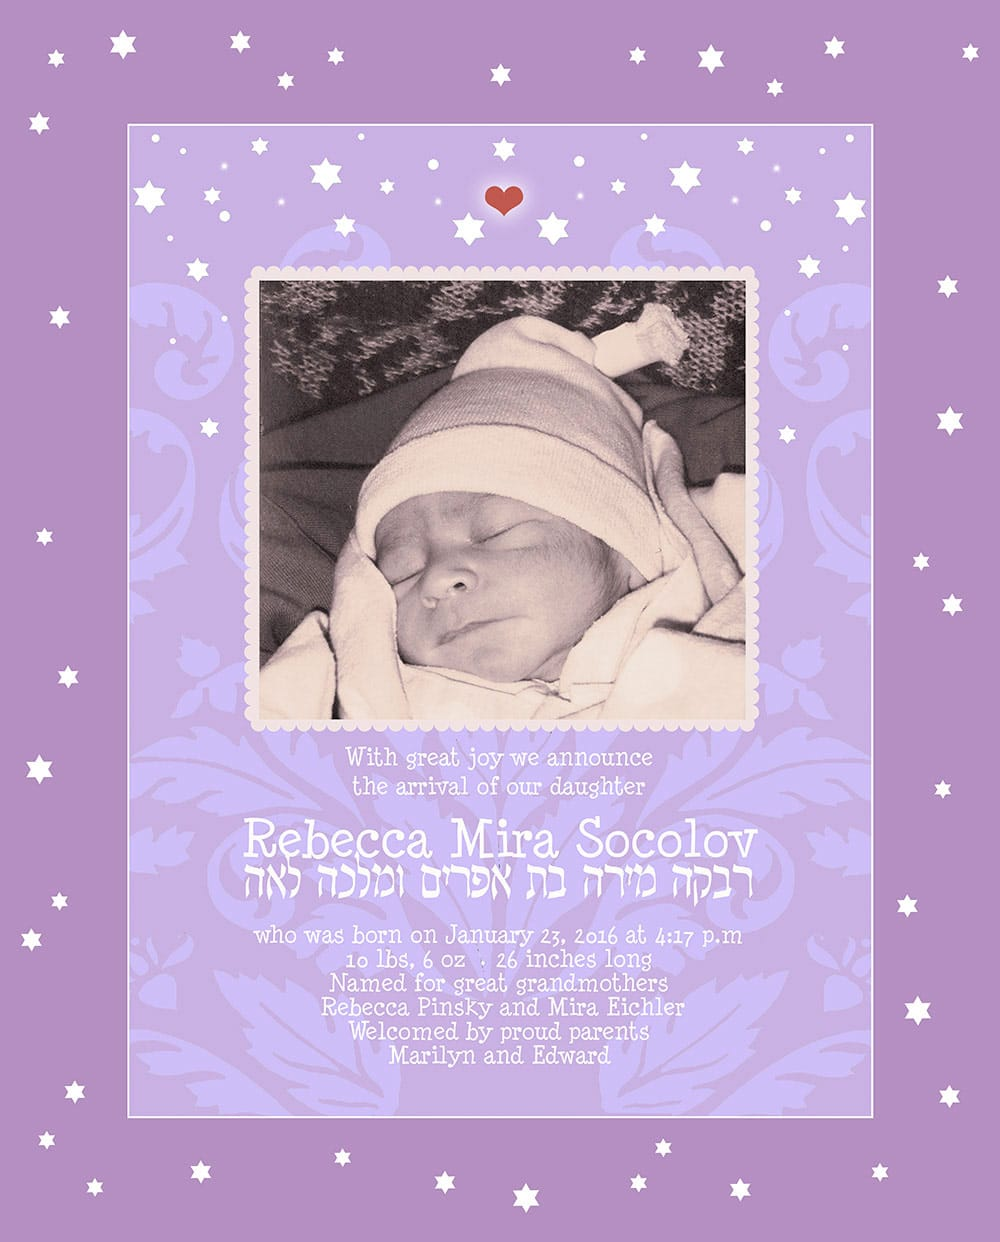 Baby Girl Starry Night Violet Baby Wall Art G-BG-13a by Mickie Caspi